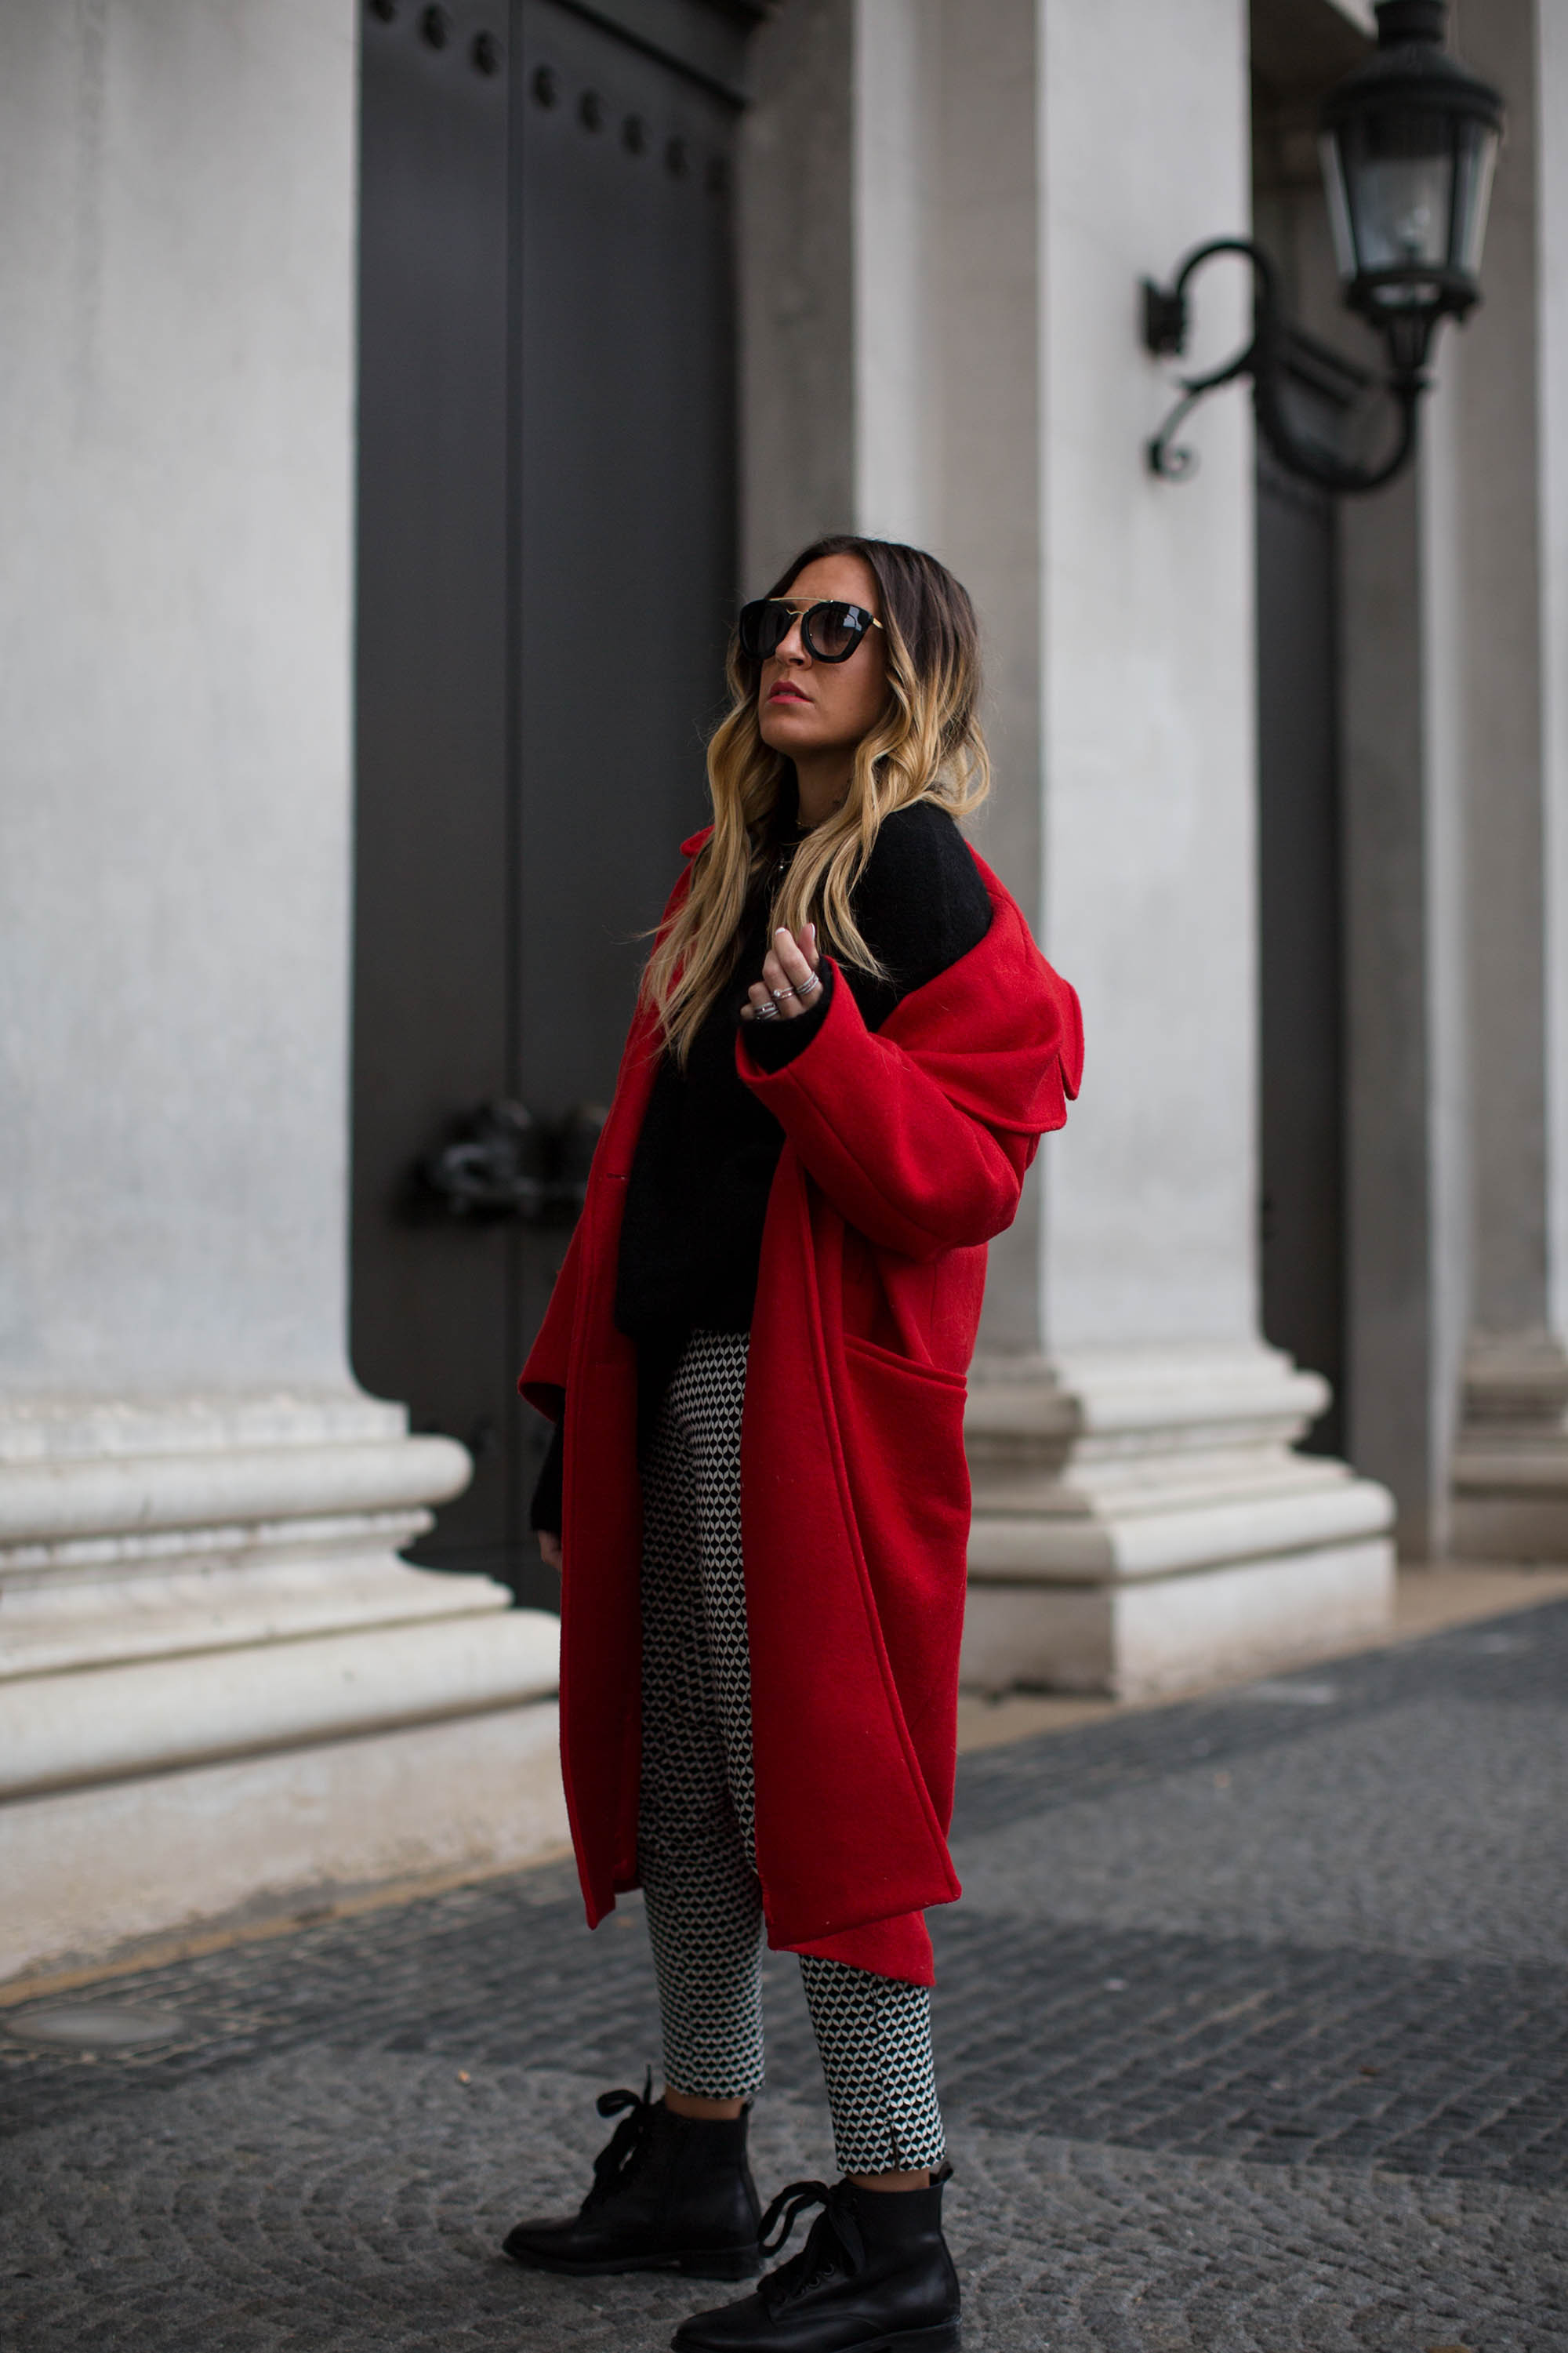 black-palms-hm-roter-mantel-boots-edited-streestyle-fashionblog-3